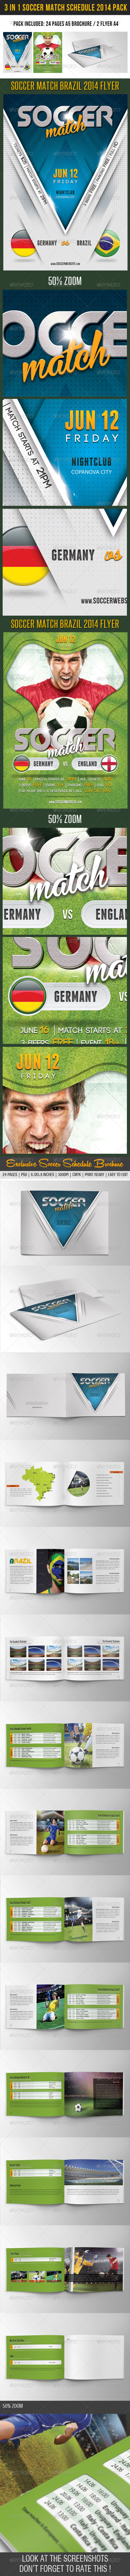 GraphicRiver 3 in 1 Soccer Match Schedule 2014 Pack V2 7843349